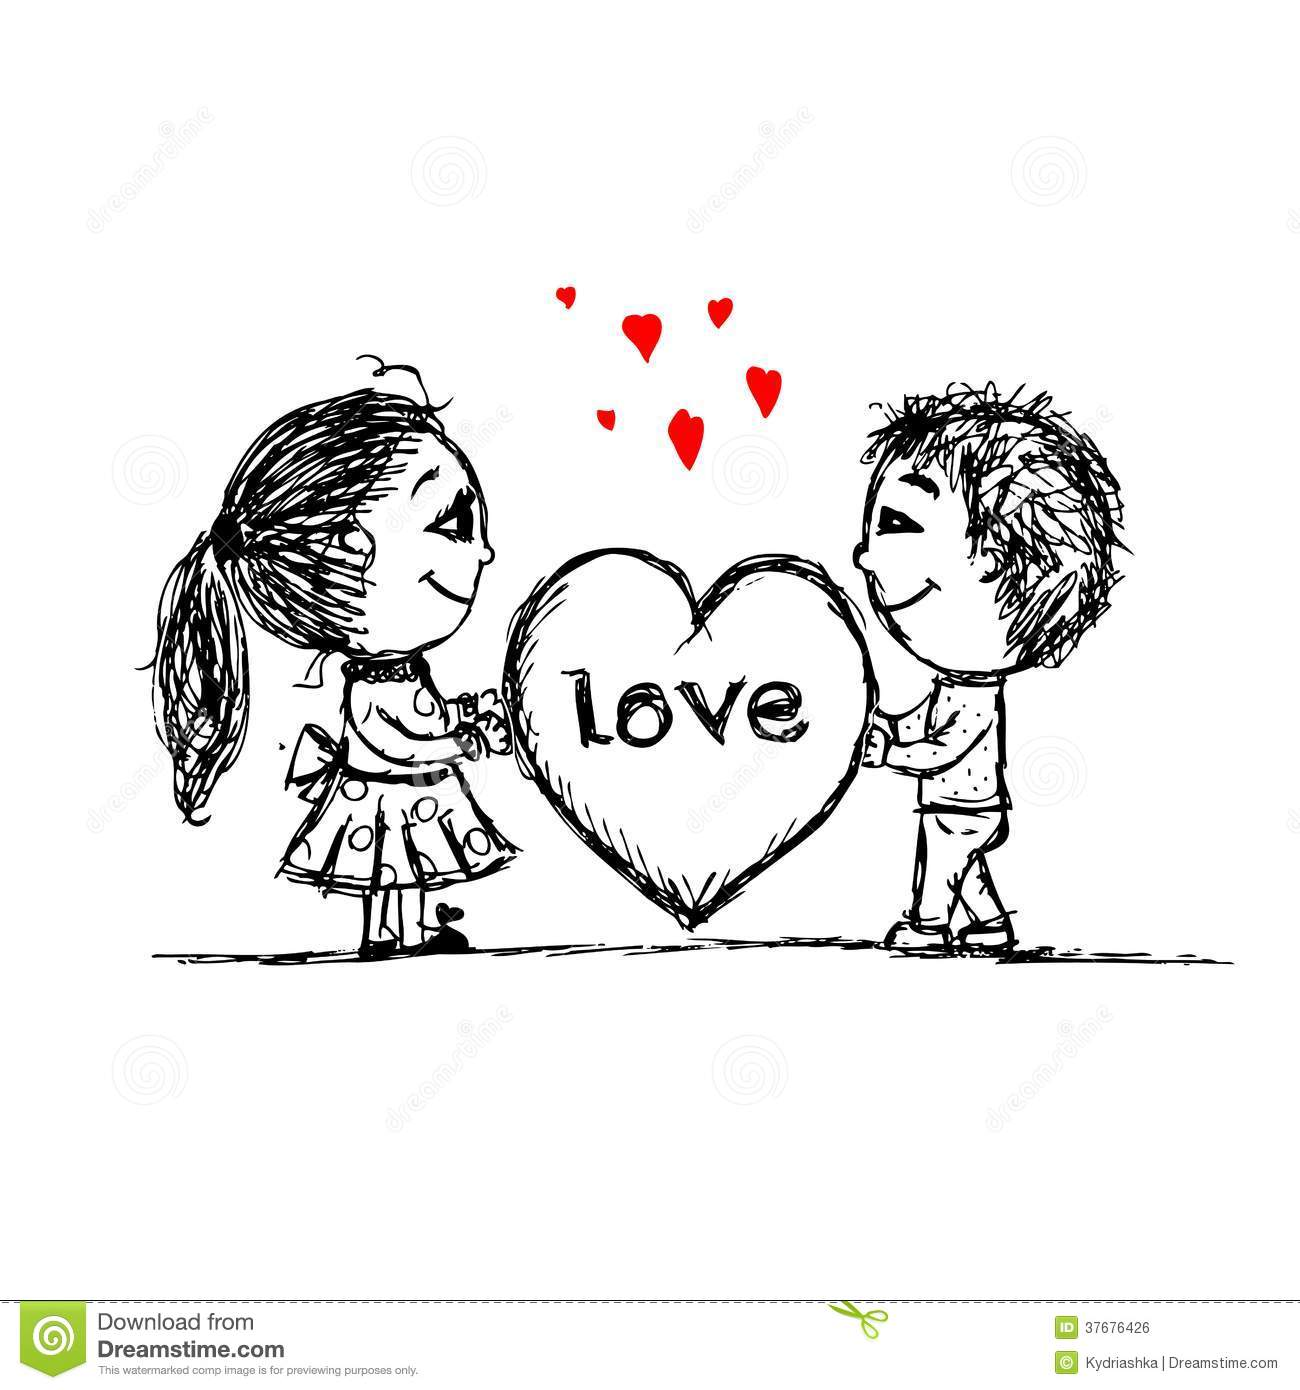 Love couple Wallpaper Sketch : couple In Love Together, Valentine Sketch For Your Stock Vector - Image: 37676426